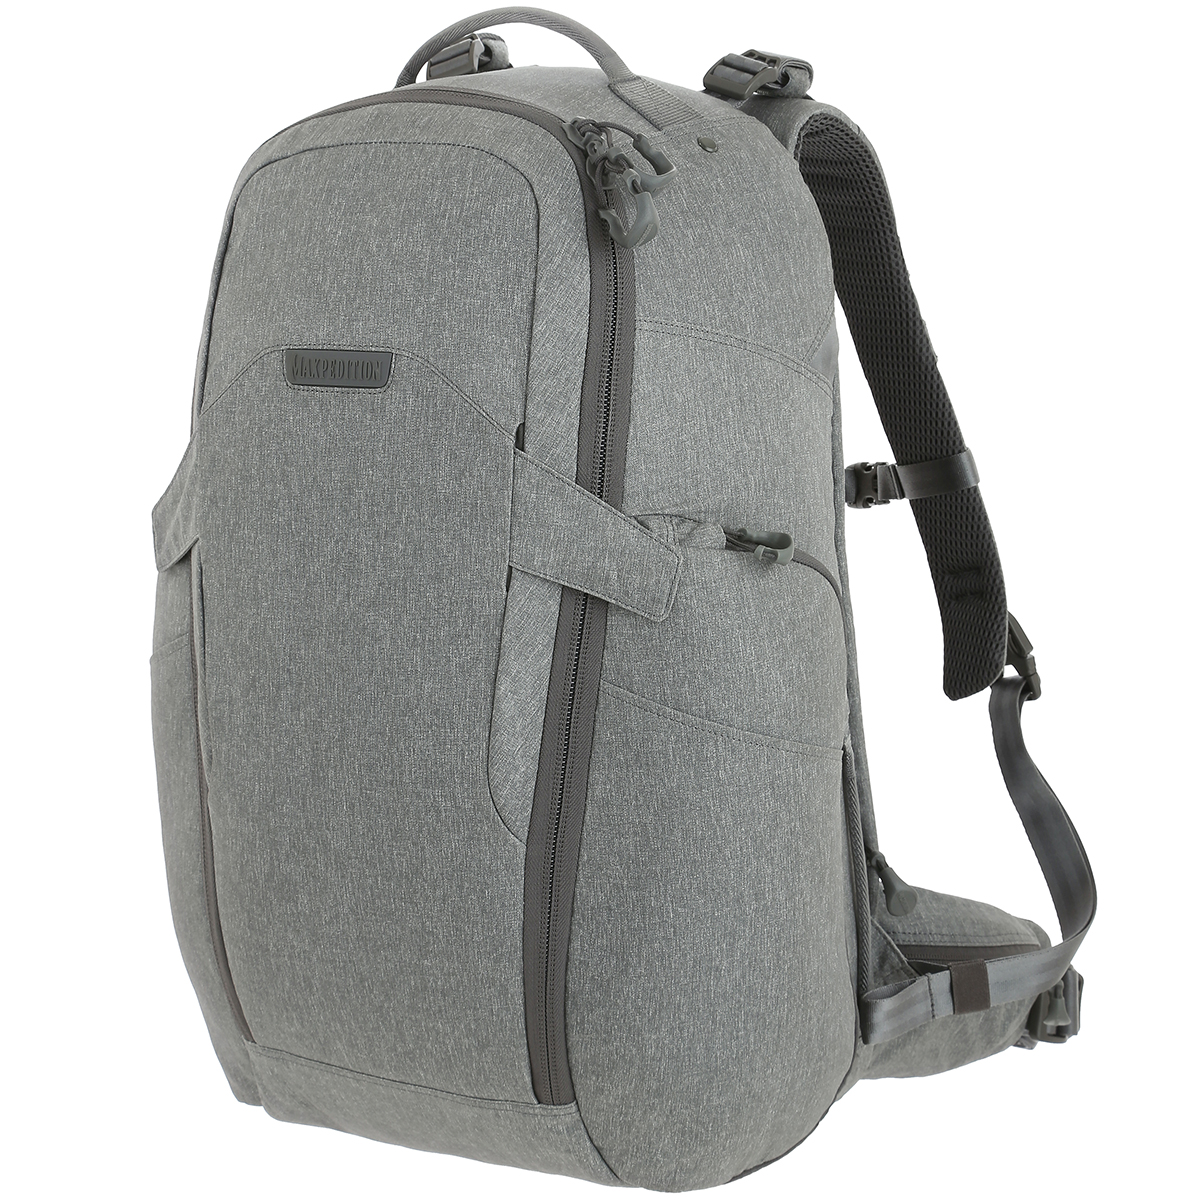 Maxpedition Nttpk35as Entity 35 Ccw Enabled Internal Frame